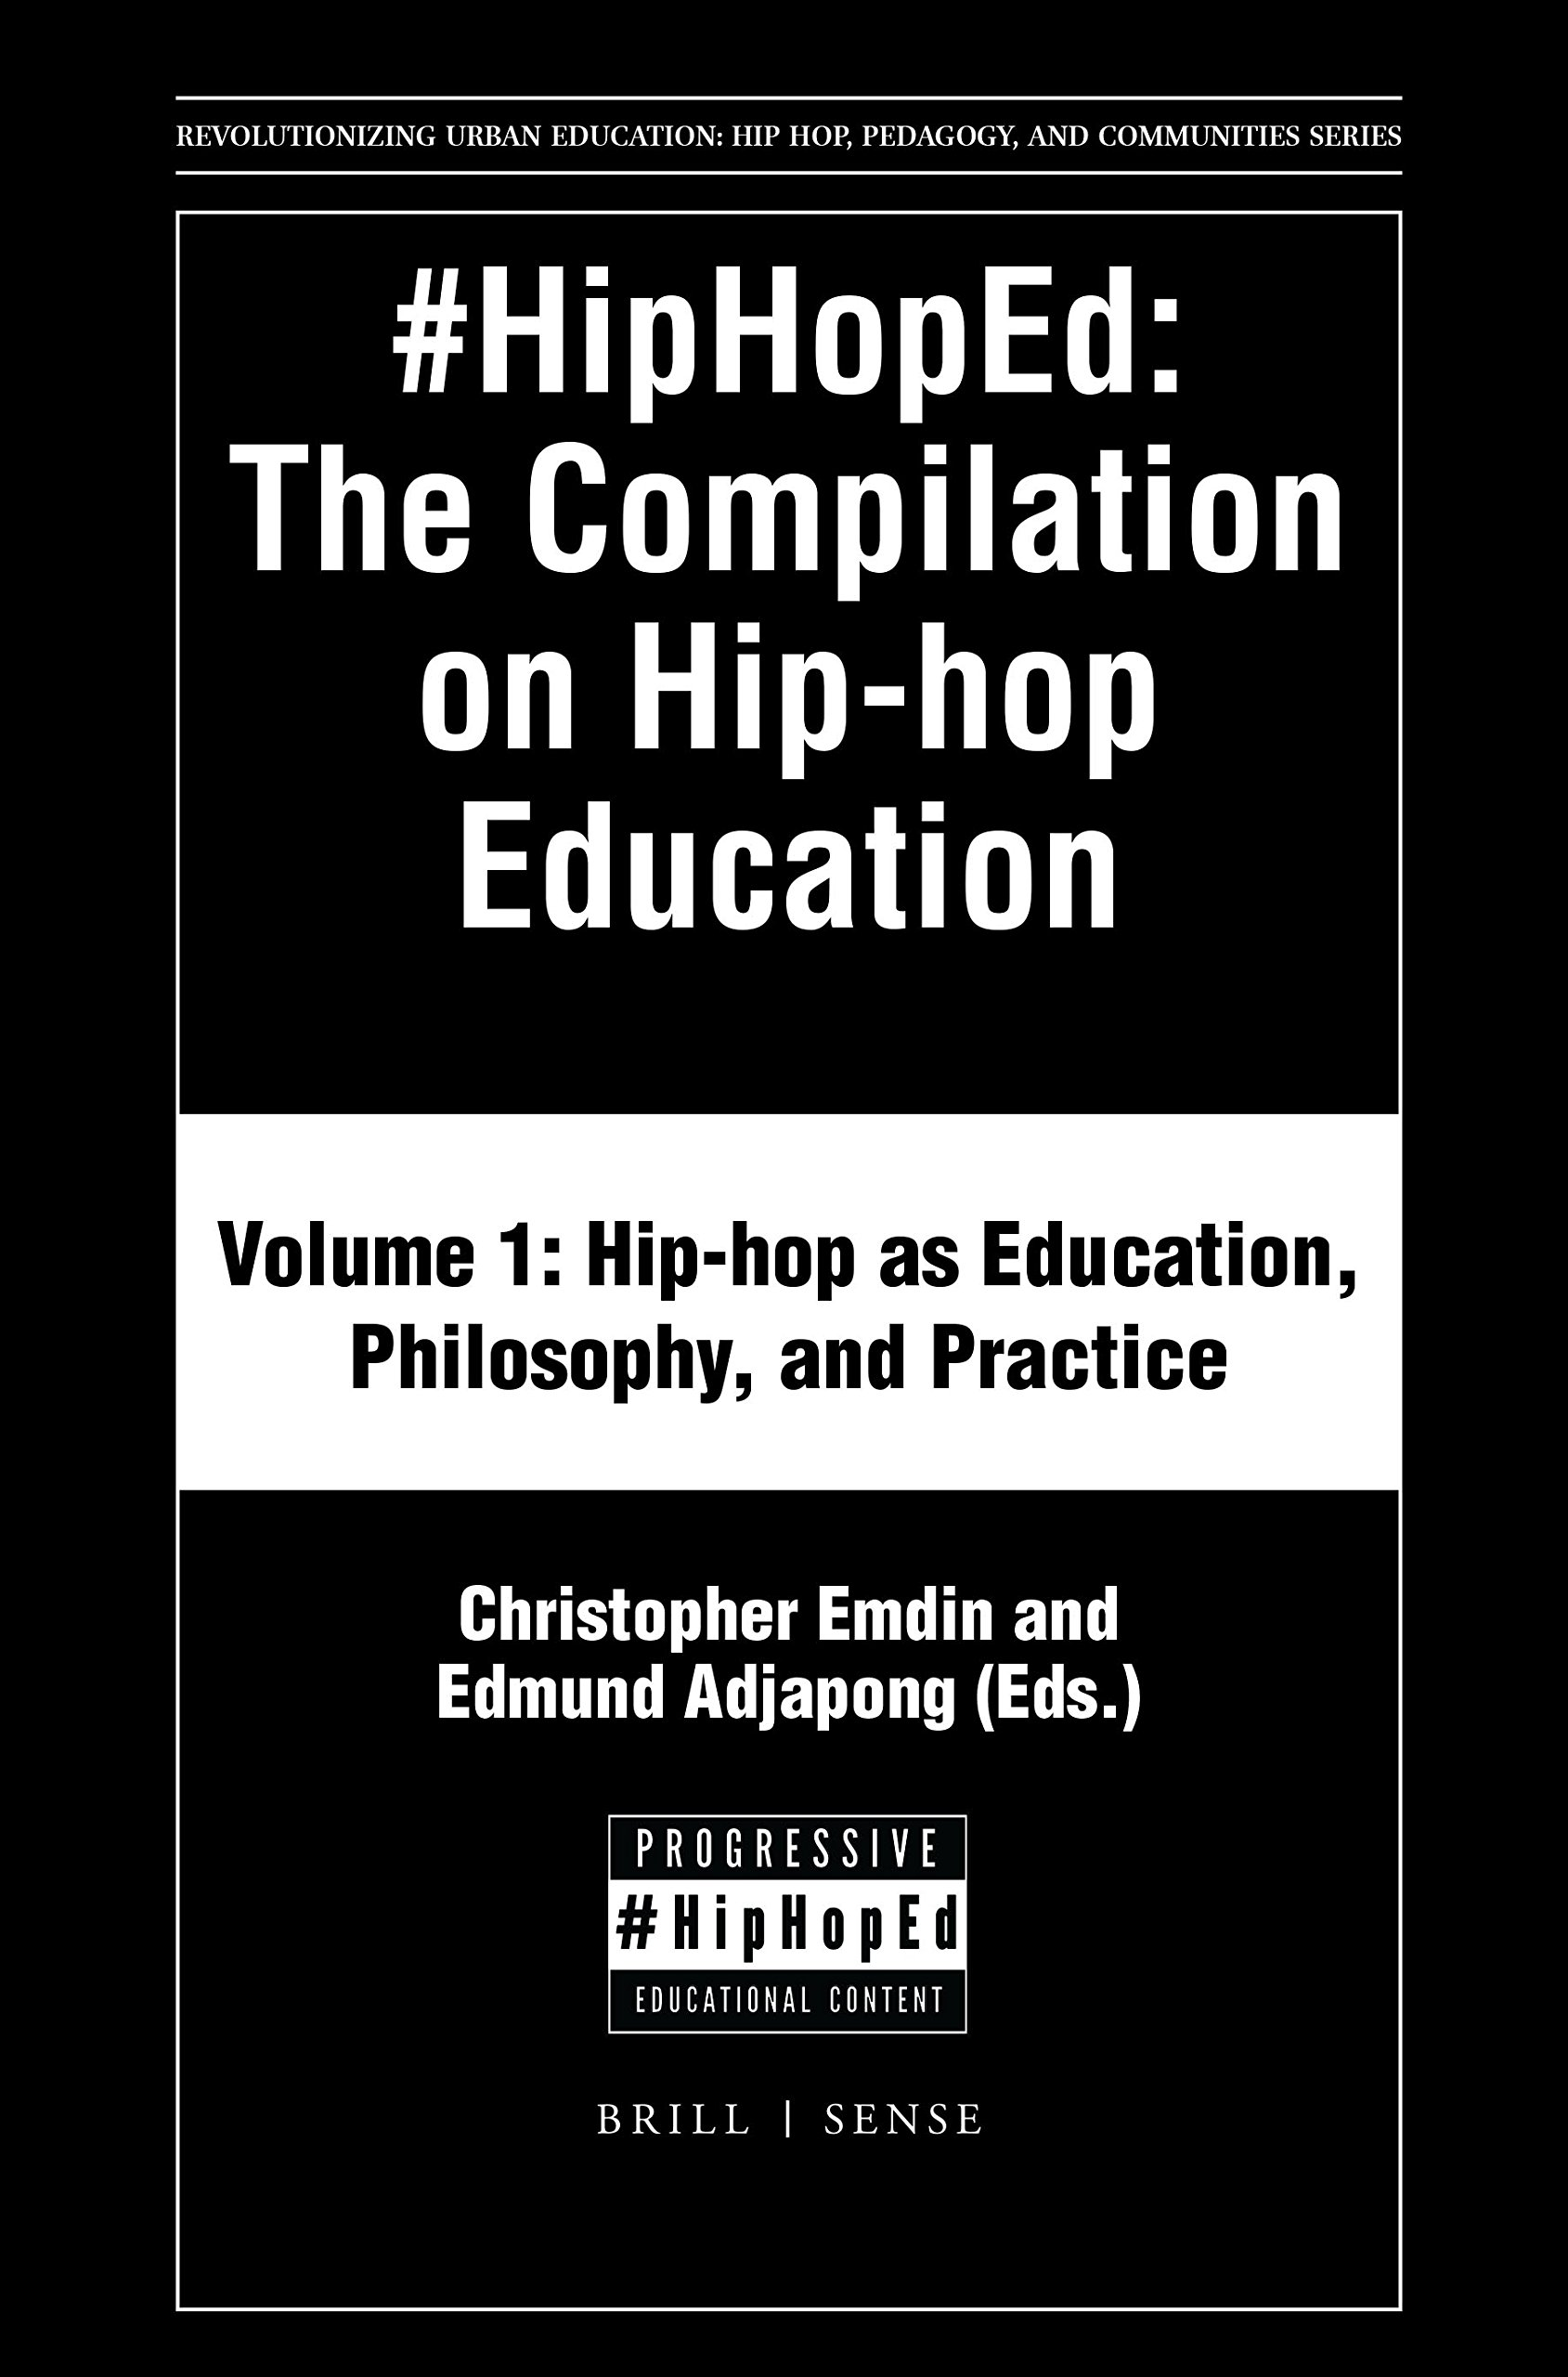 #HipHopEd: The Compilation on Hip-hop Education (Revolutionizing Urban Education) (Revolutionizing Urban Education: Hip-hop, Pedagogy, and Communities) pdf